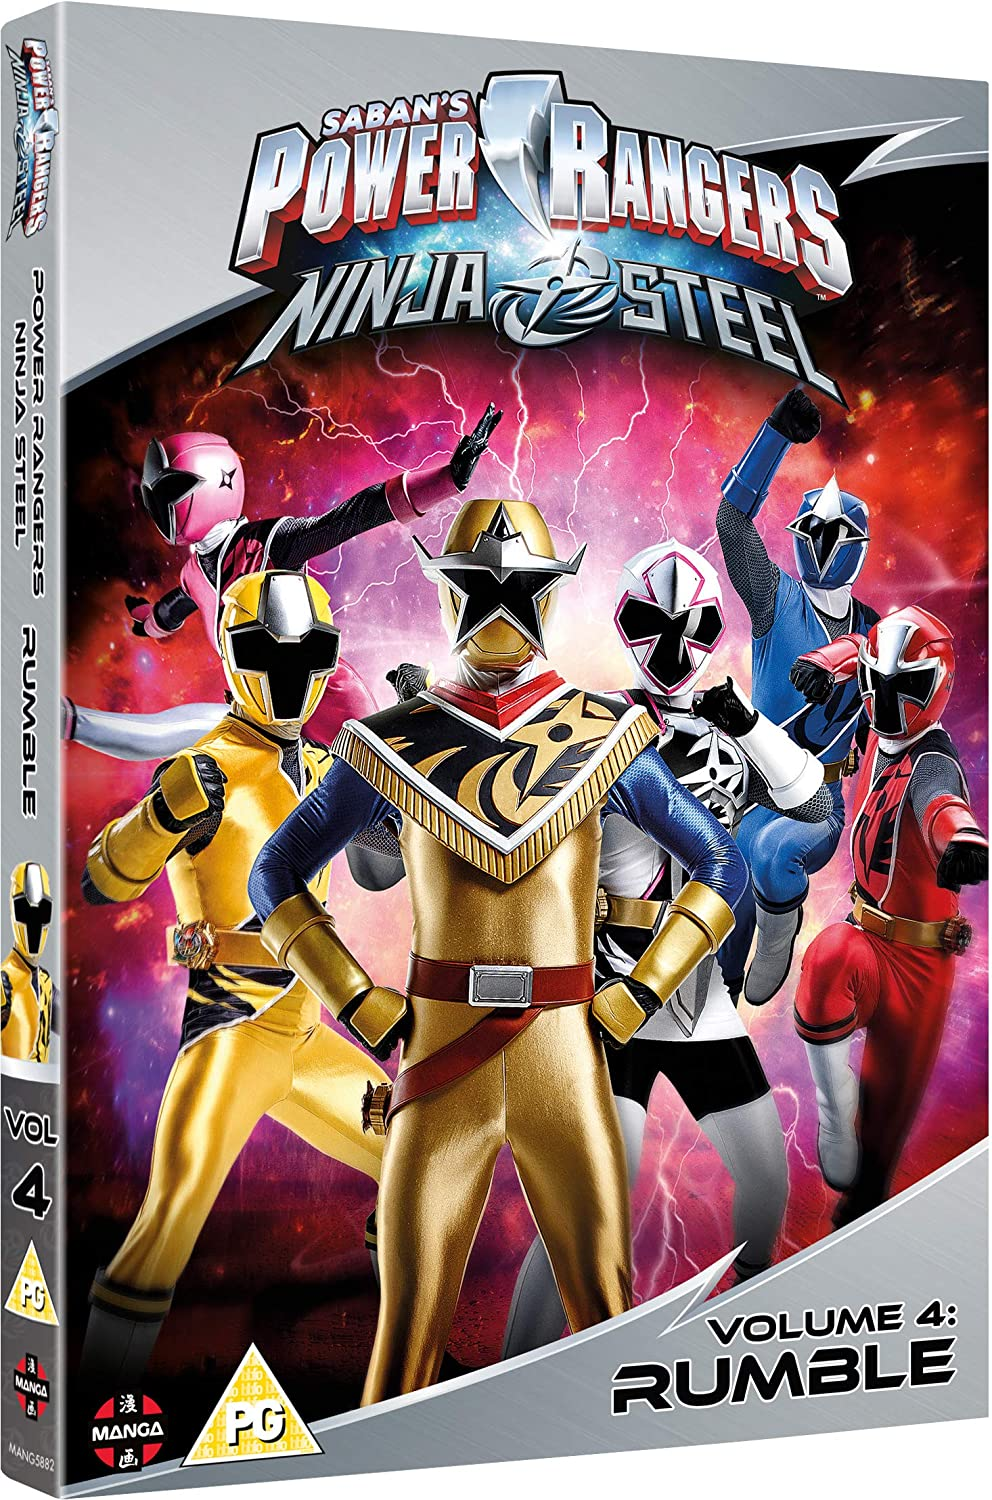 Power Rangers Ninja Steel: Rumble Volume 4 Episodes 13-16 ...